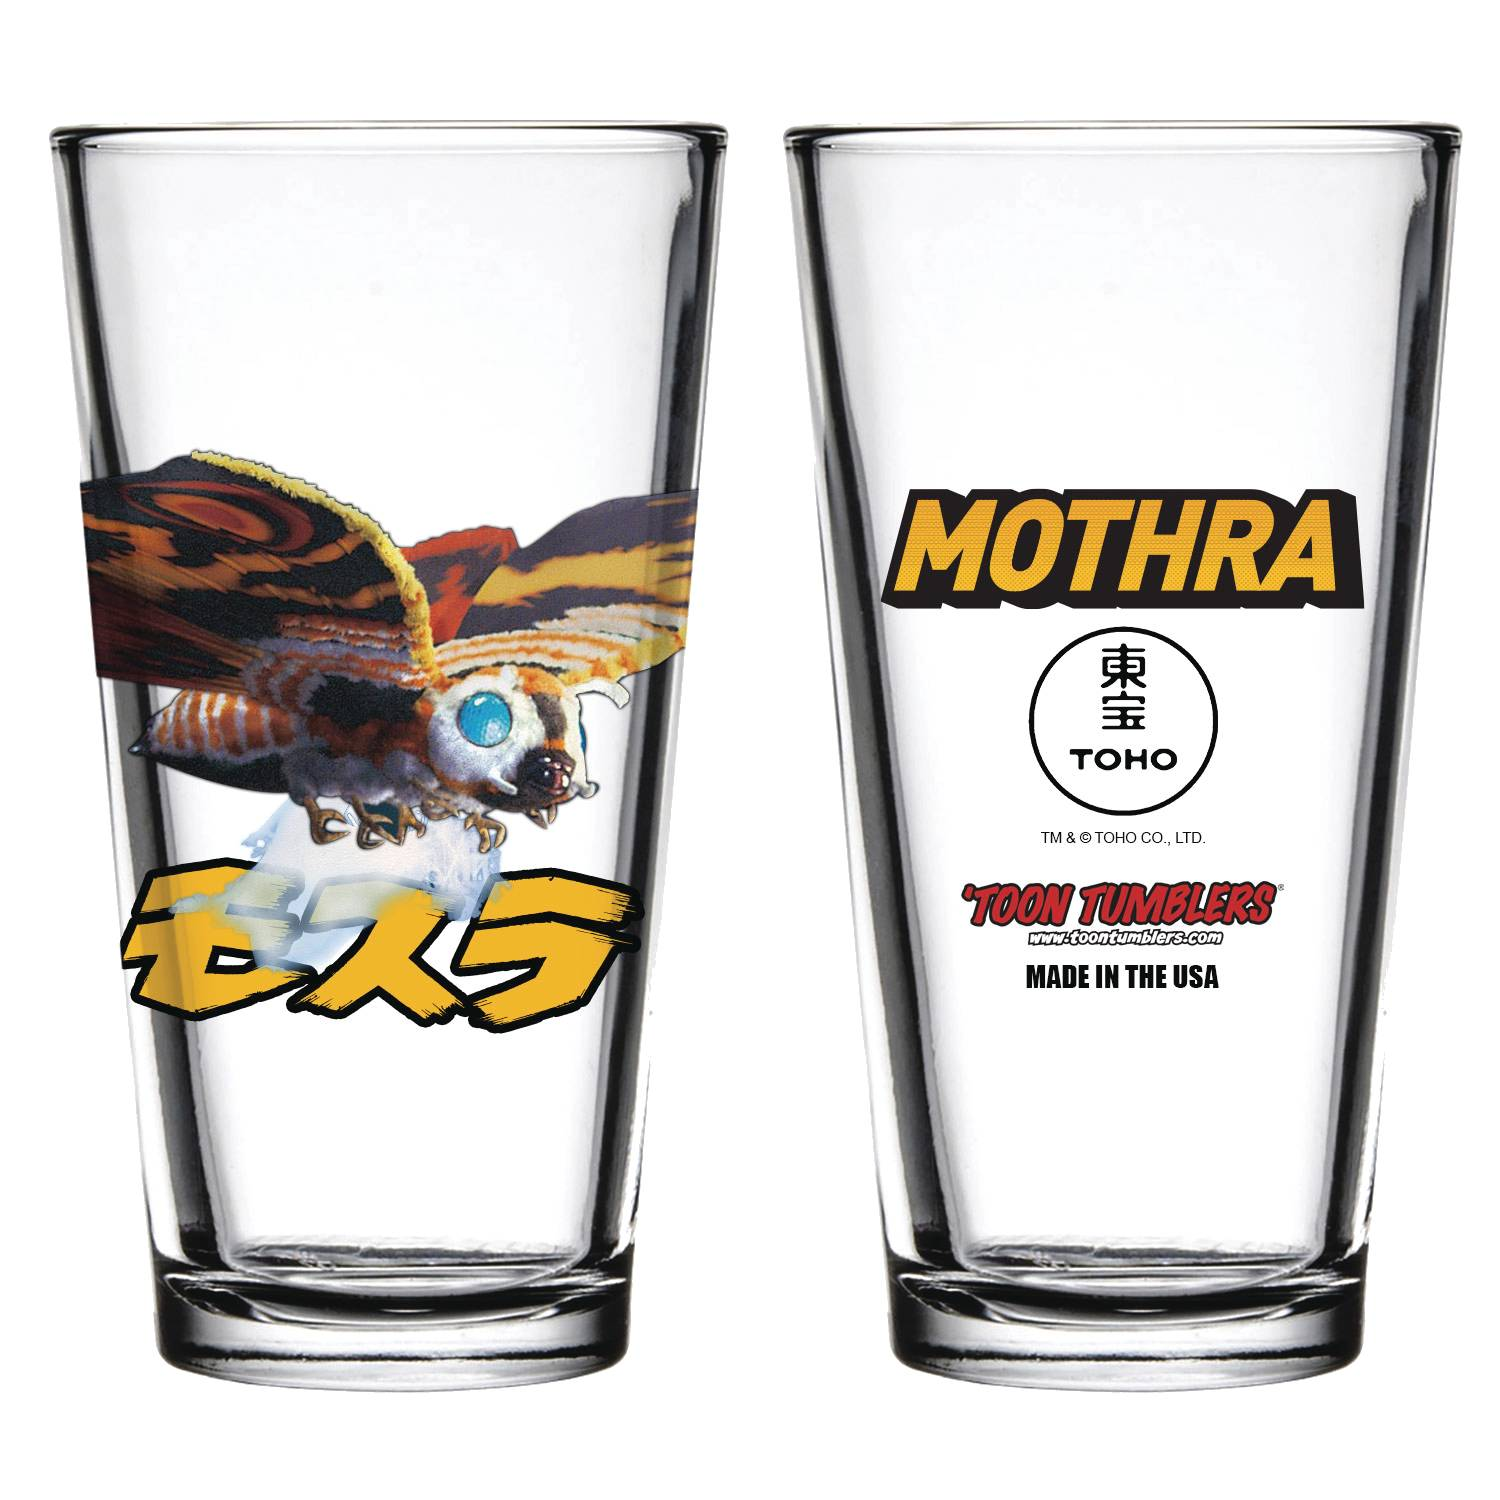 TOON TUMBLERS GODZILLA MOTHRA PINT GLASS